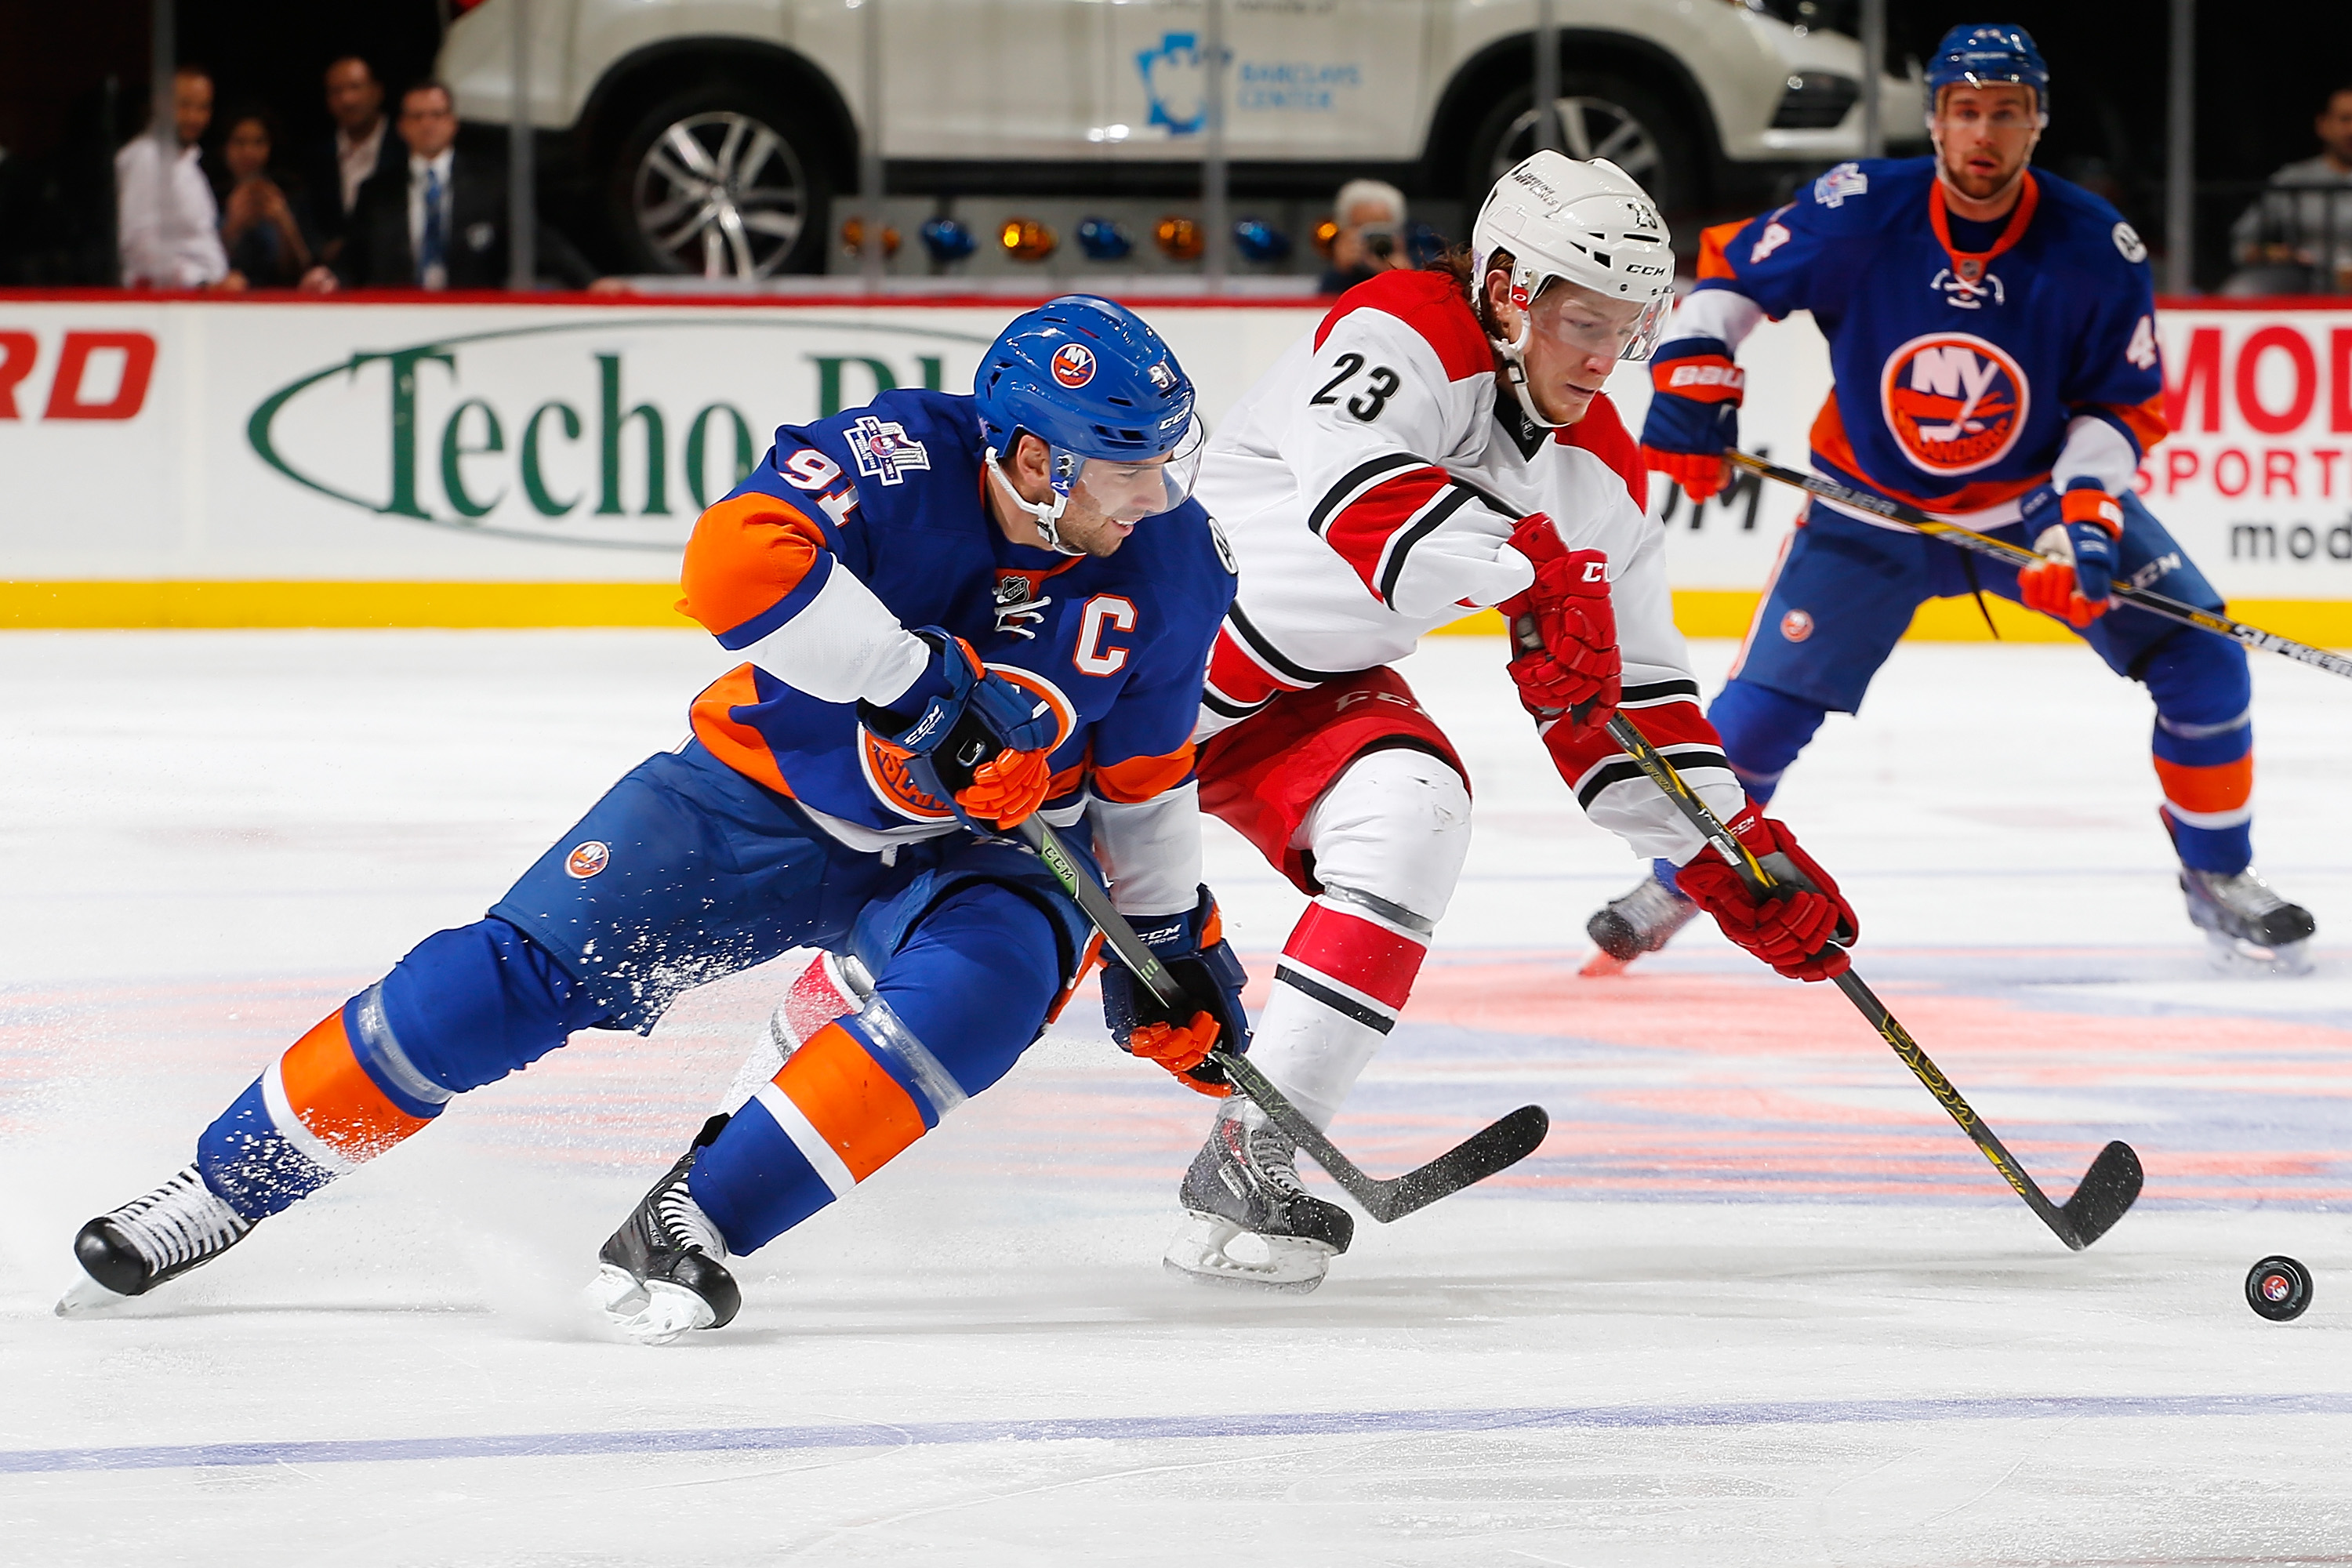 Hurricanes Vs. Islanders Predictions | NHL Divisional Finals Game 1 Picks